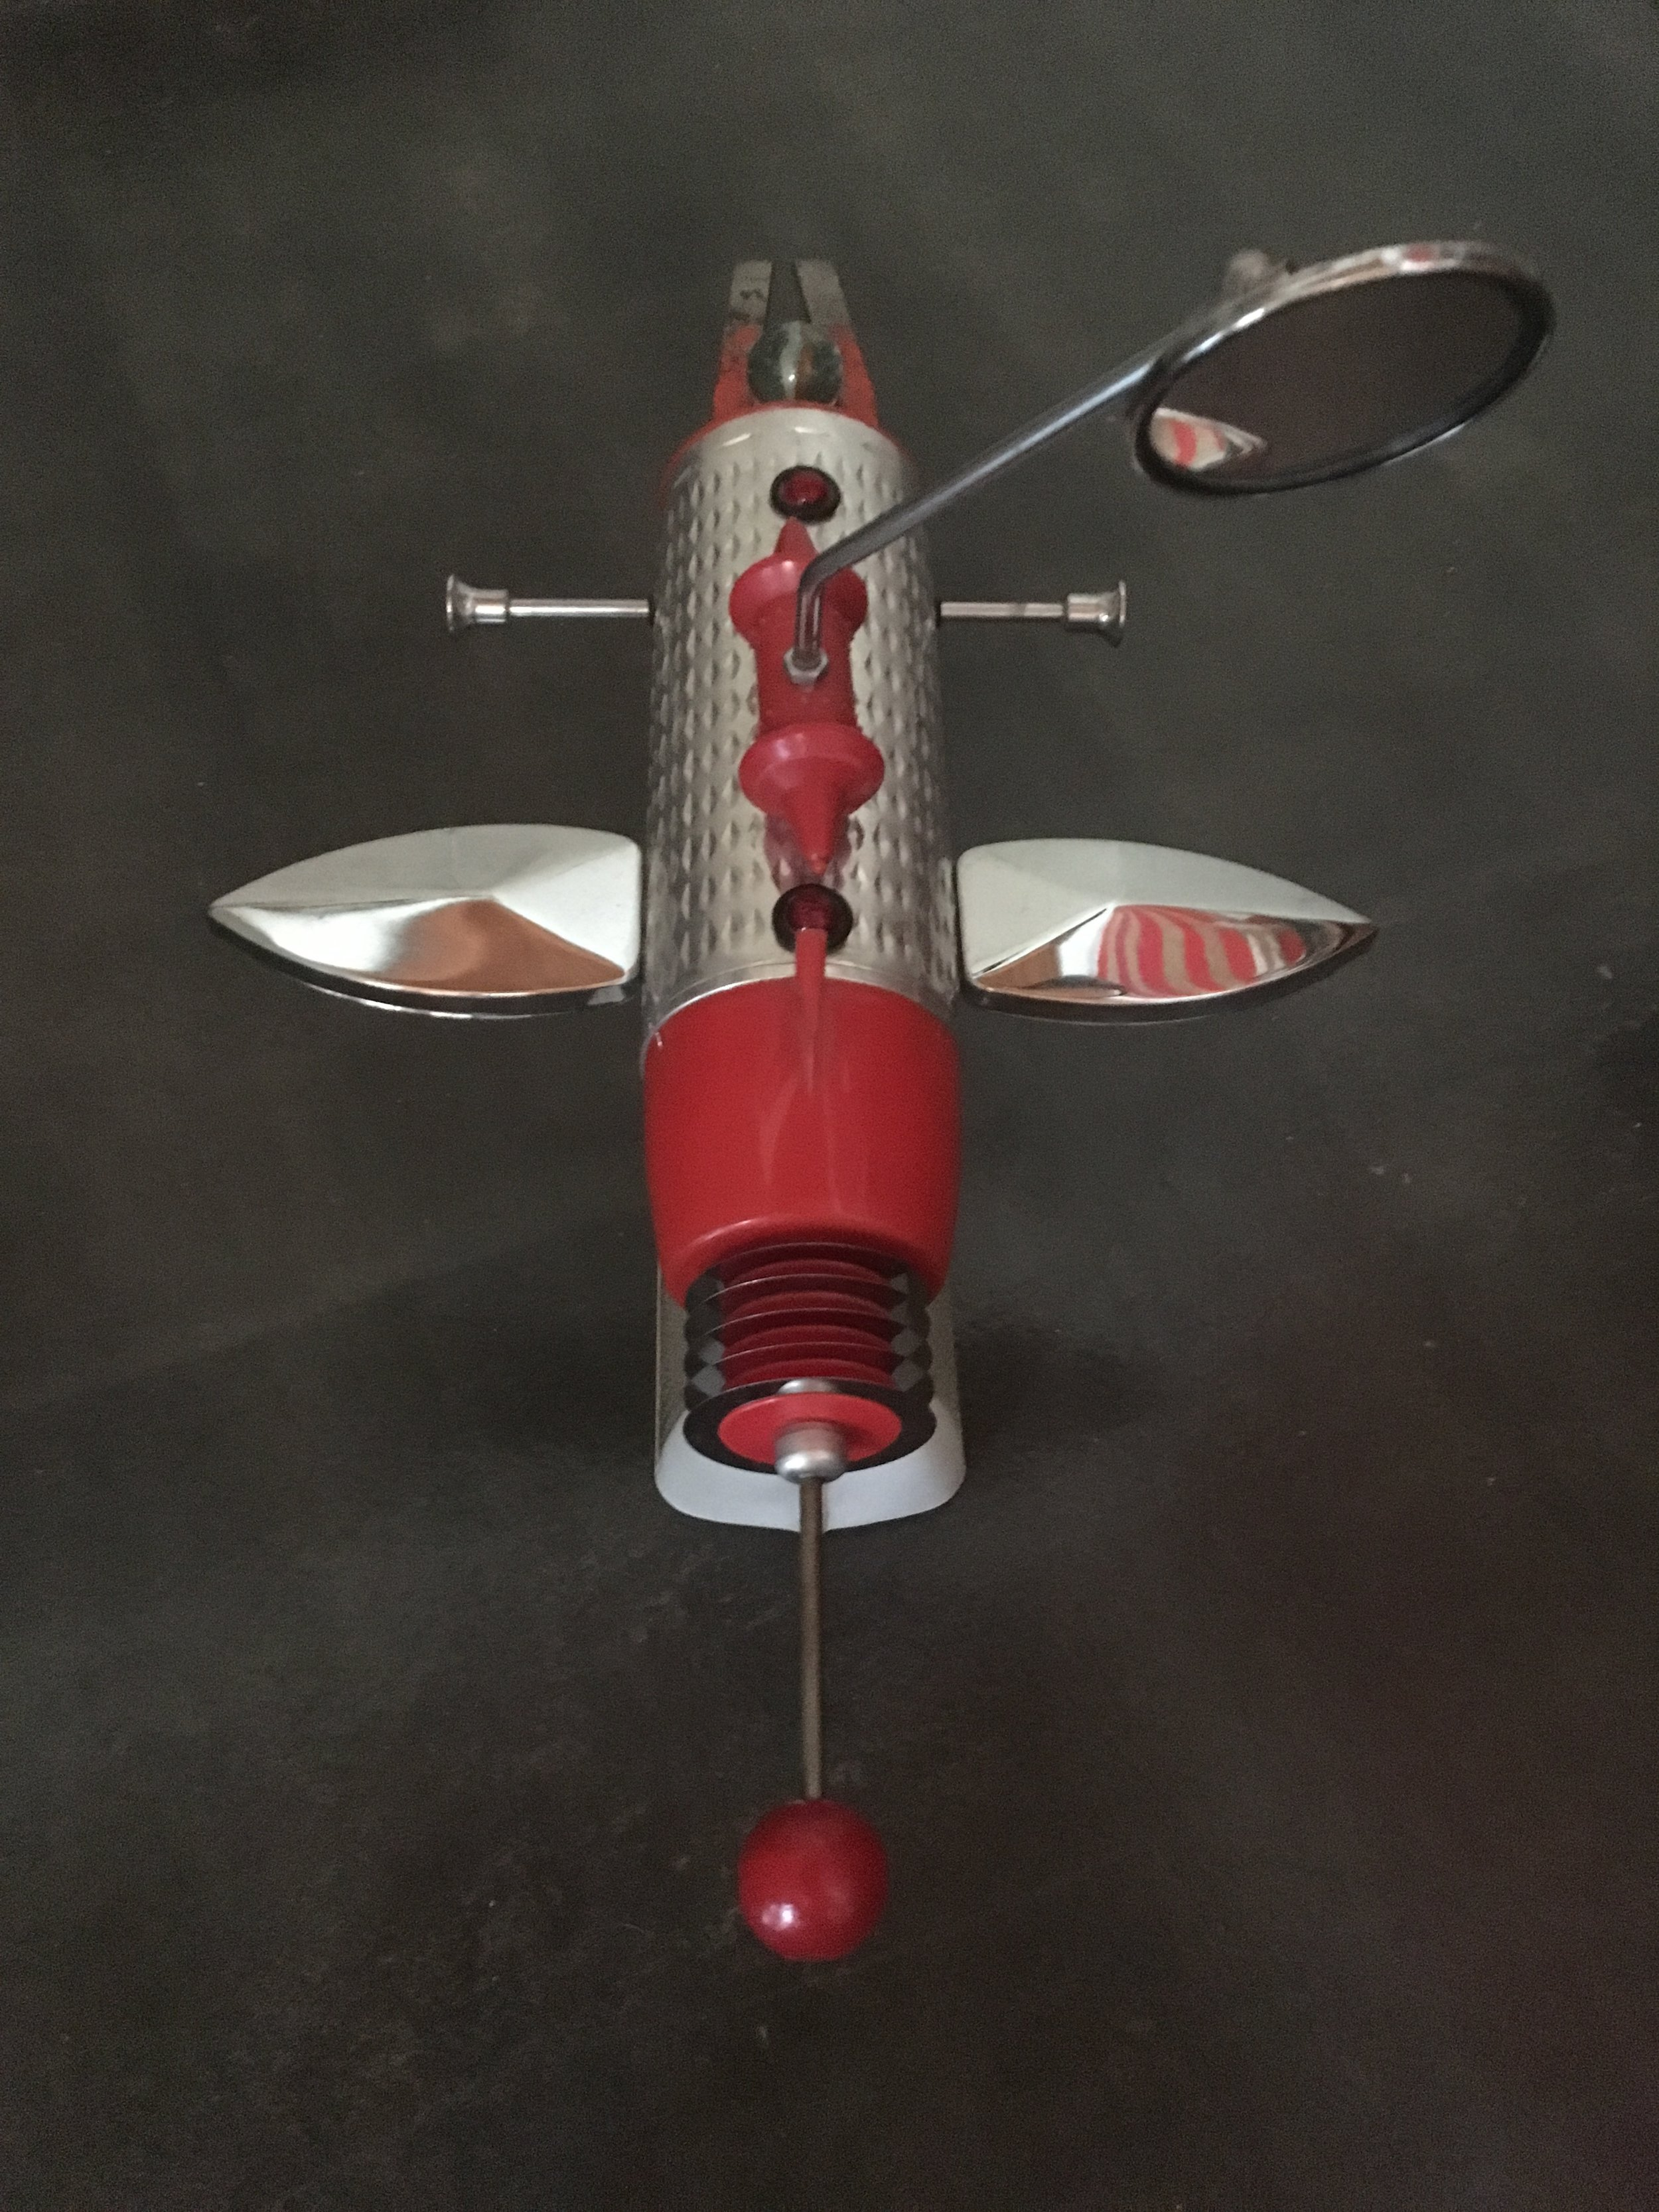 Gallery OonH-Jimmy Descant-Model 4710-Found Object Illuminated Assemblage-1998-13x11x7-1200.jpg